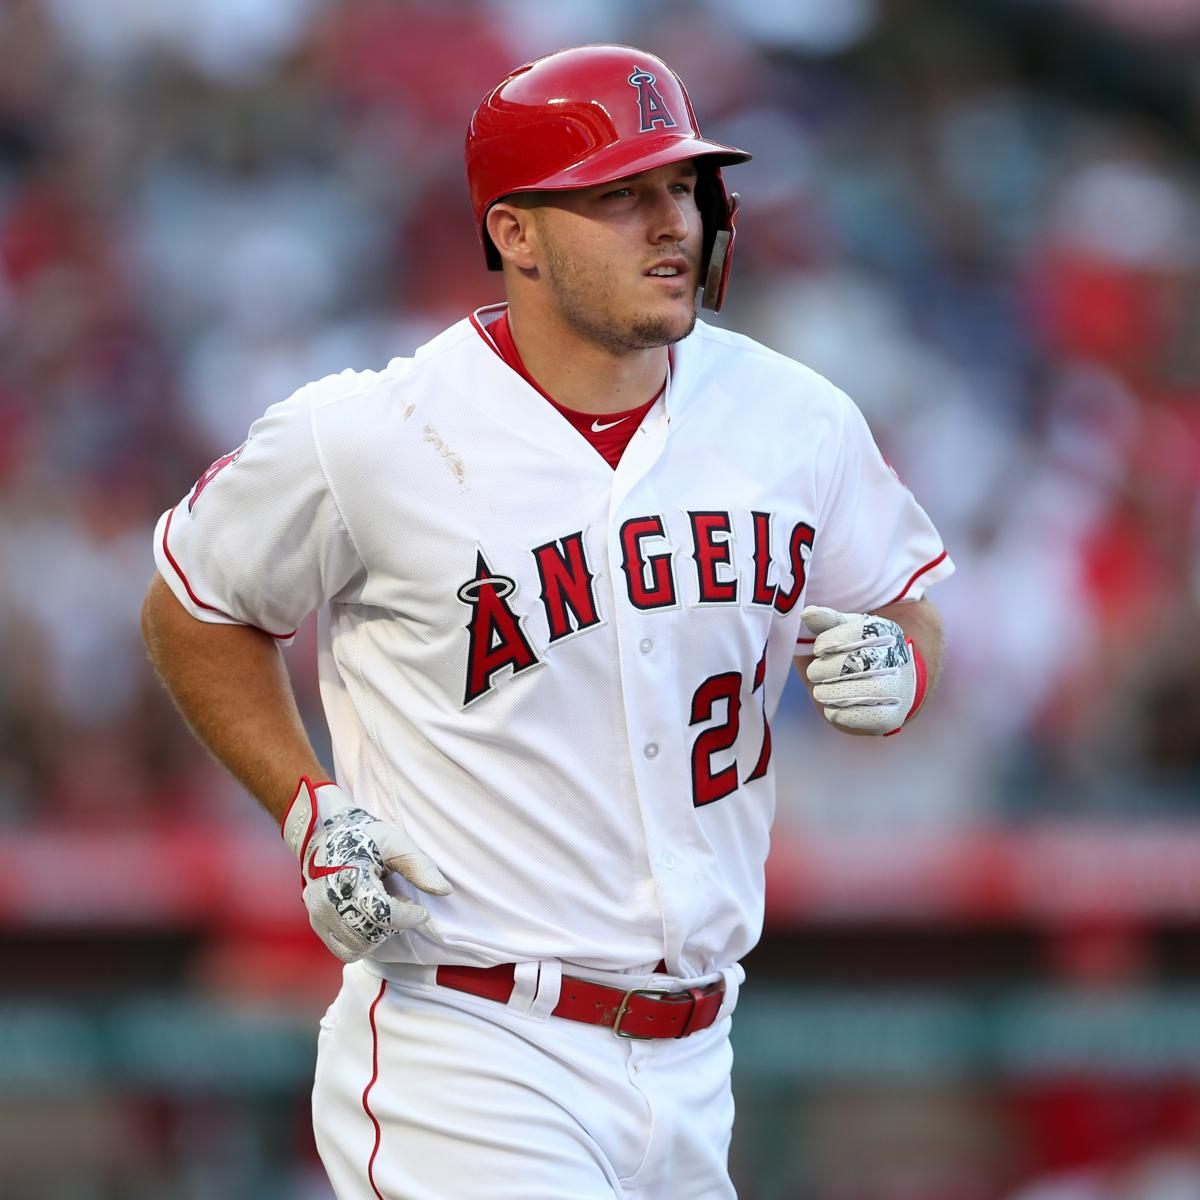 Mike Trout Placed On 10-Day DL With Wrist Injury